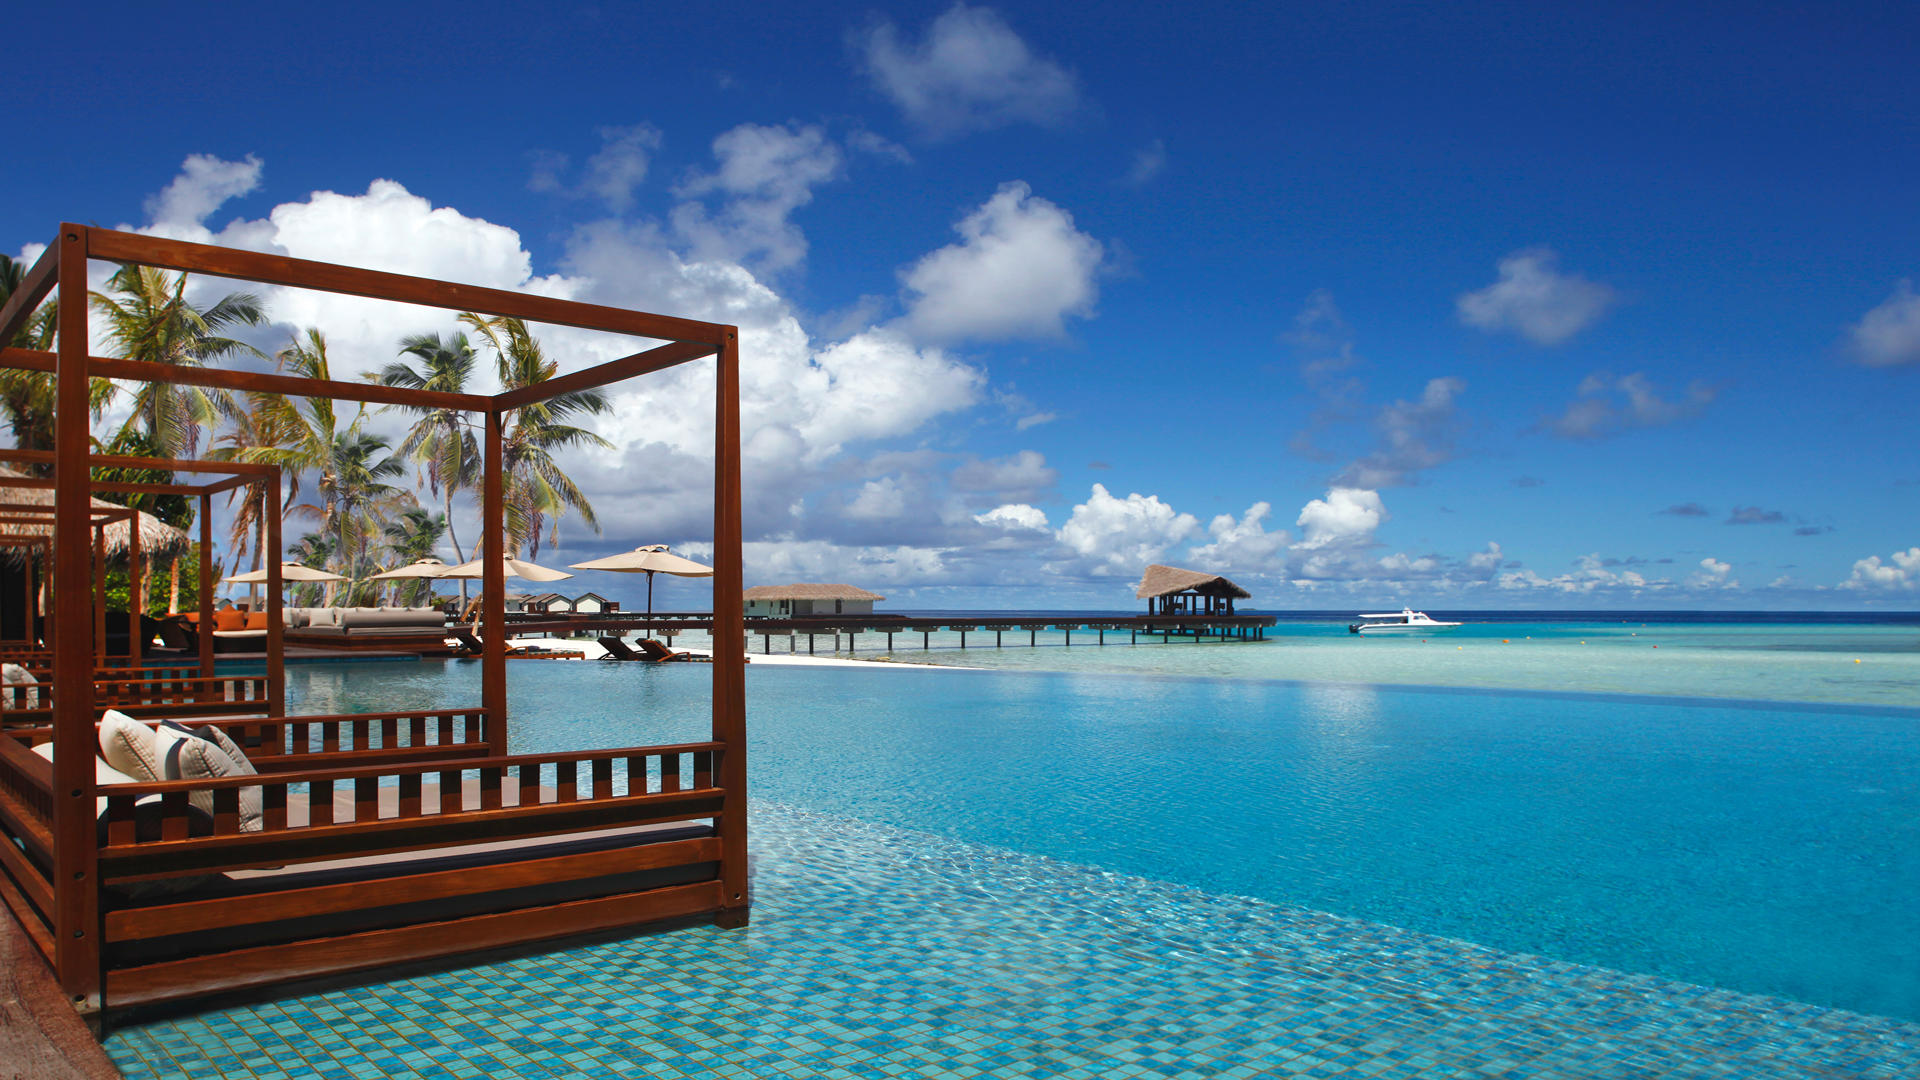 Cenizaro_ResidencesMaldives_Swiming-Pool-Overlooking-Ocean